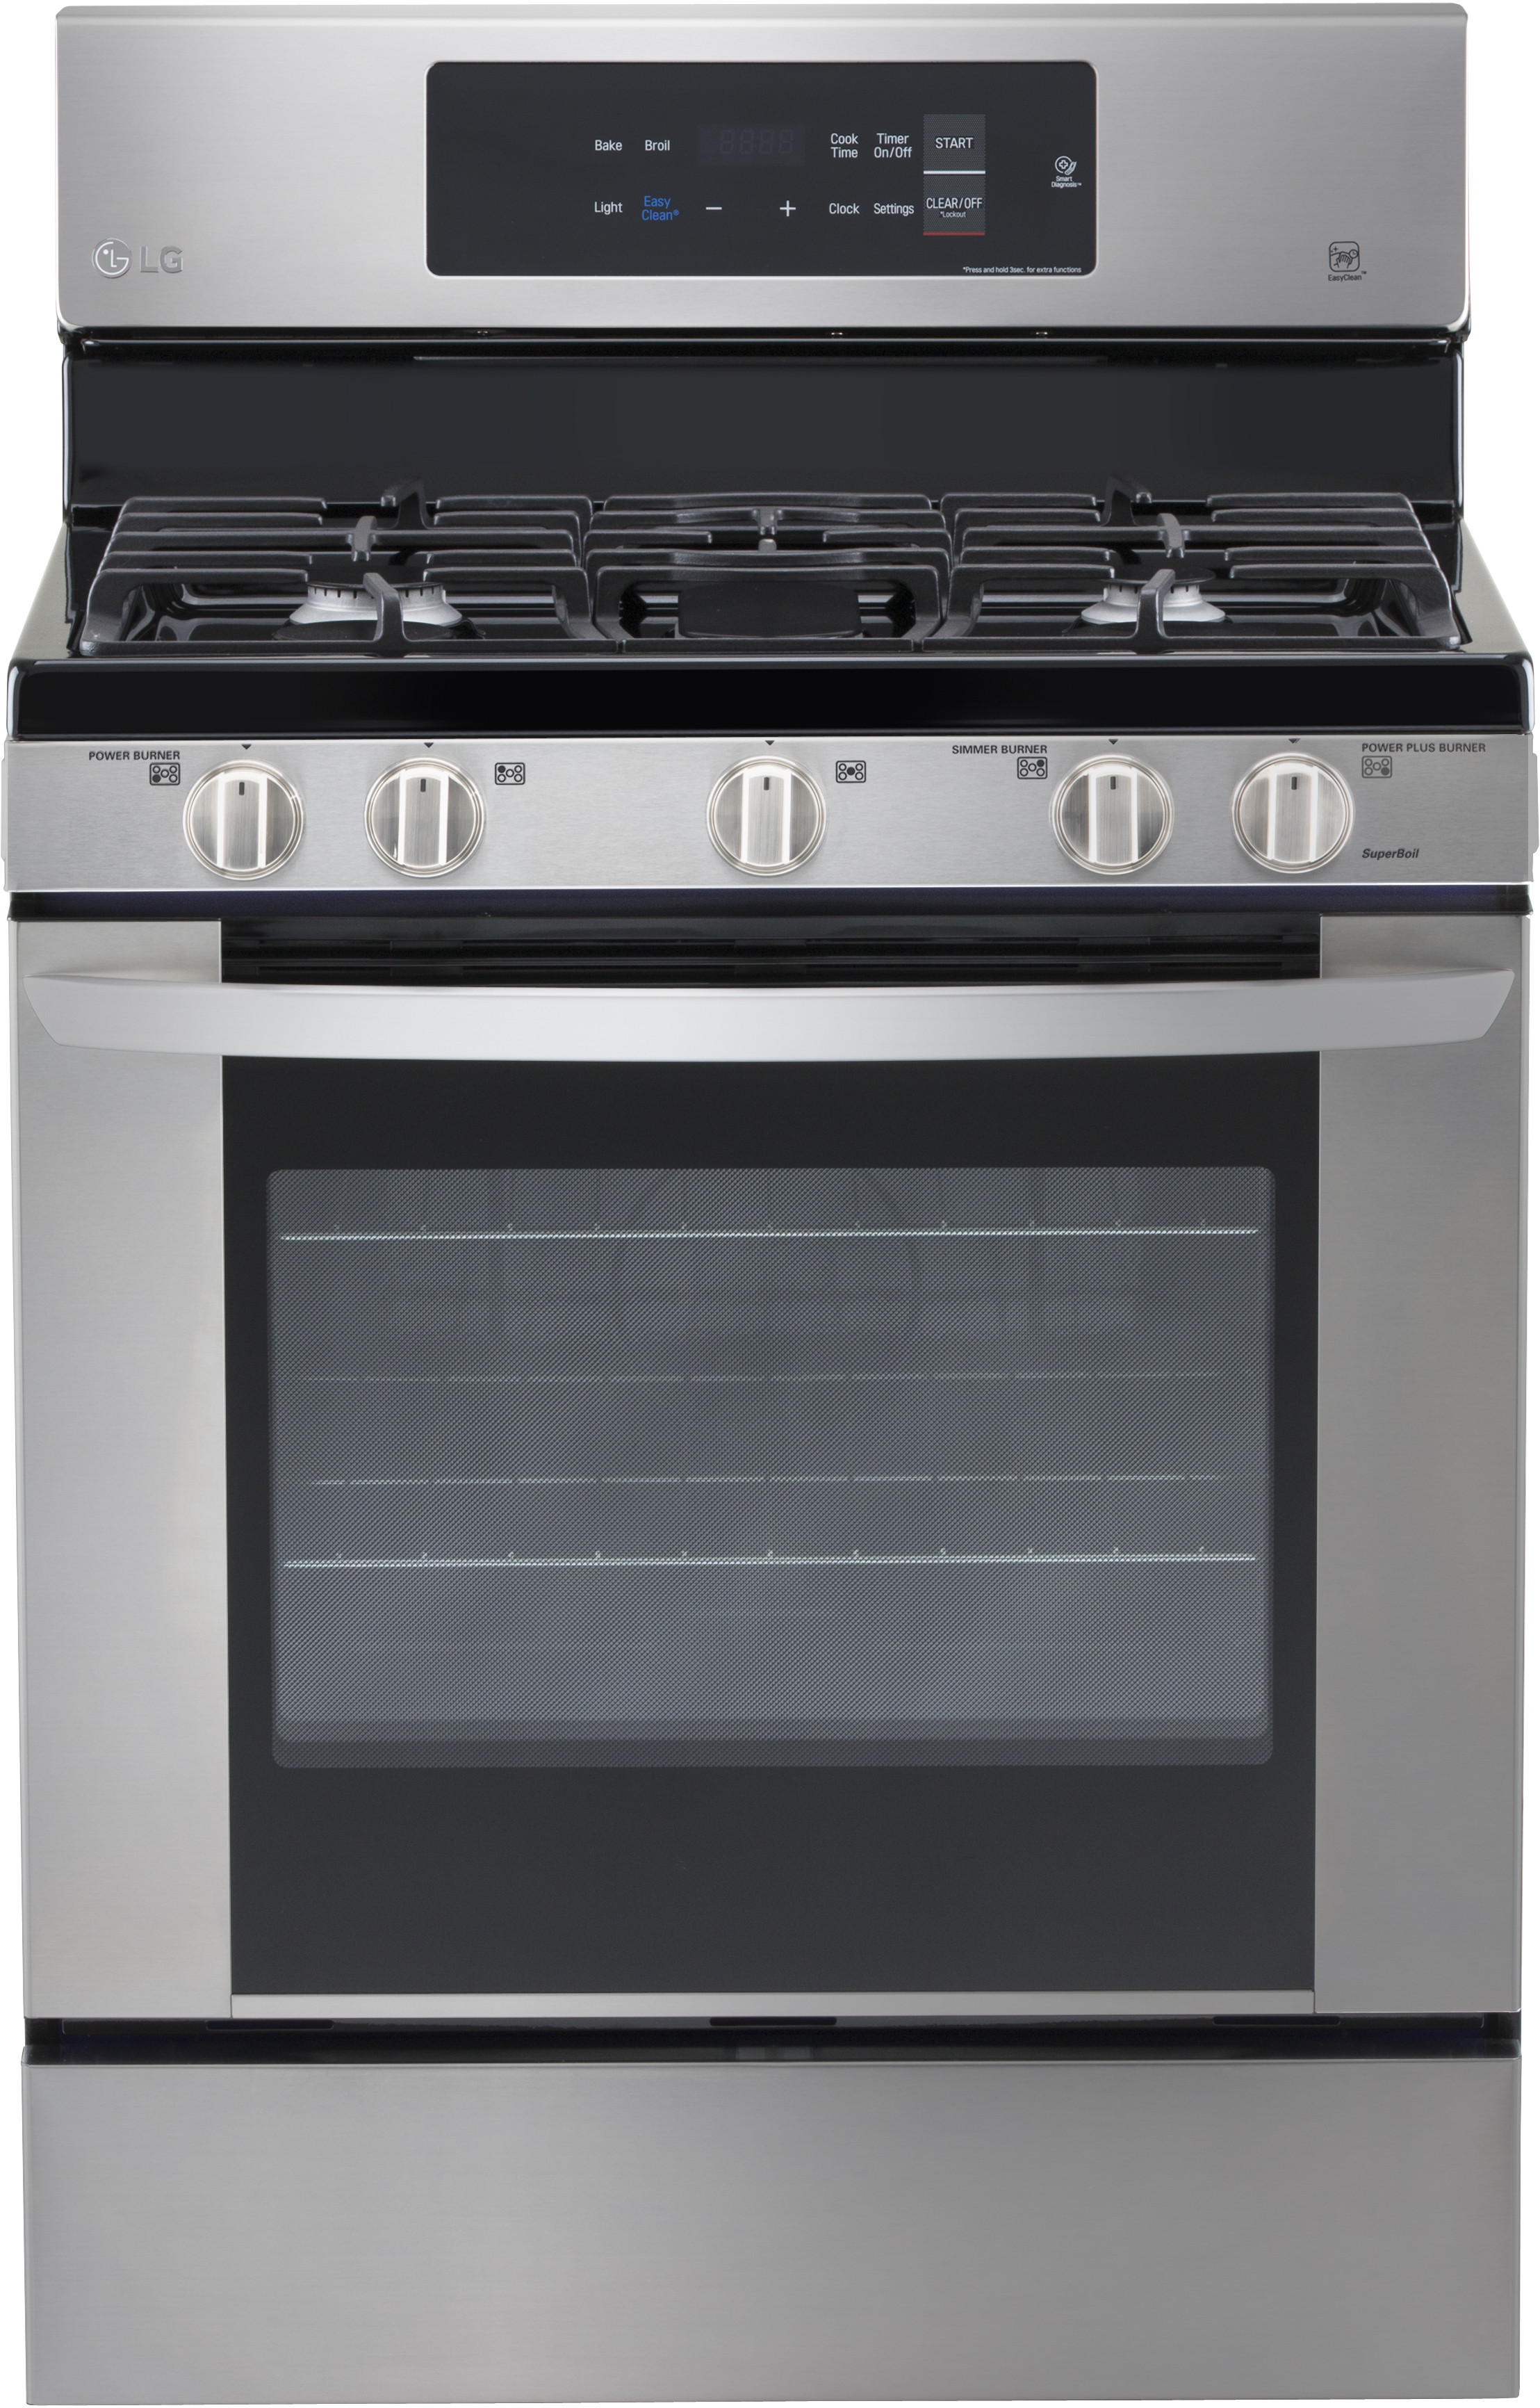 Lg double oven gas range reviews - Lg Double Oven Gas Range Reviews 46